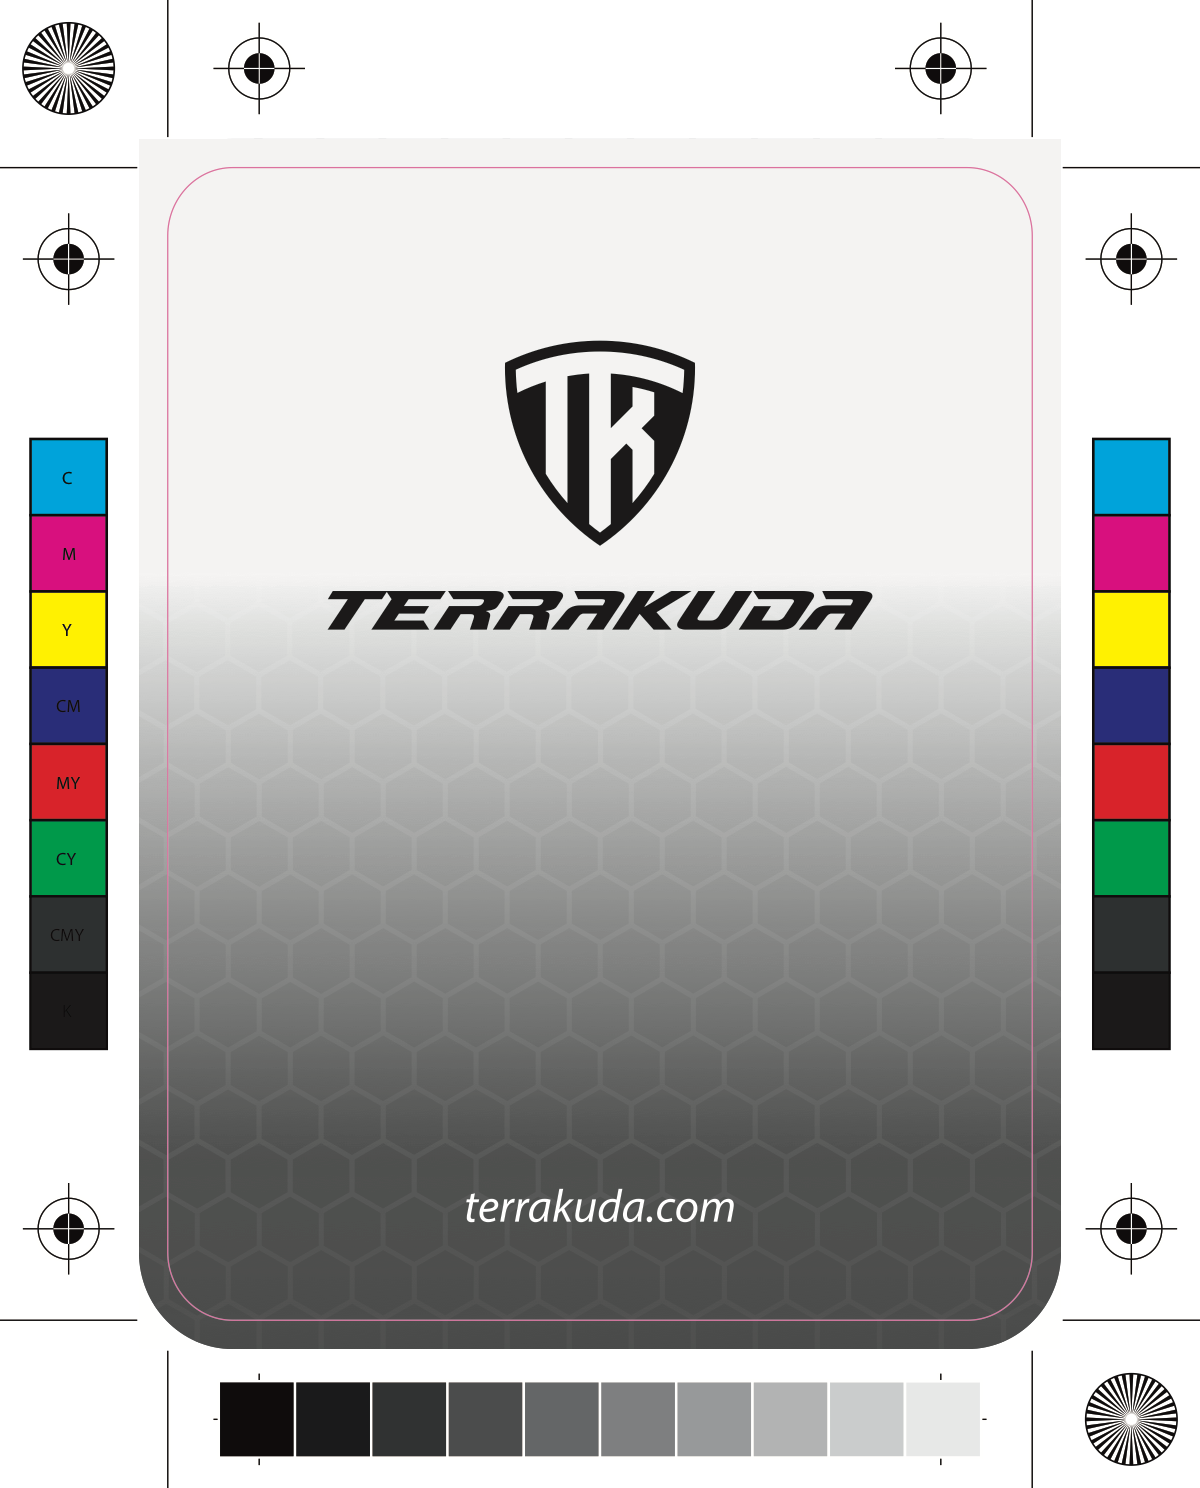 Terrakuda & Armorbilt - tags (front and back)